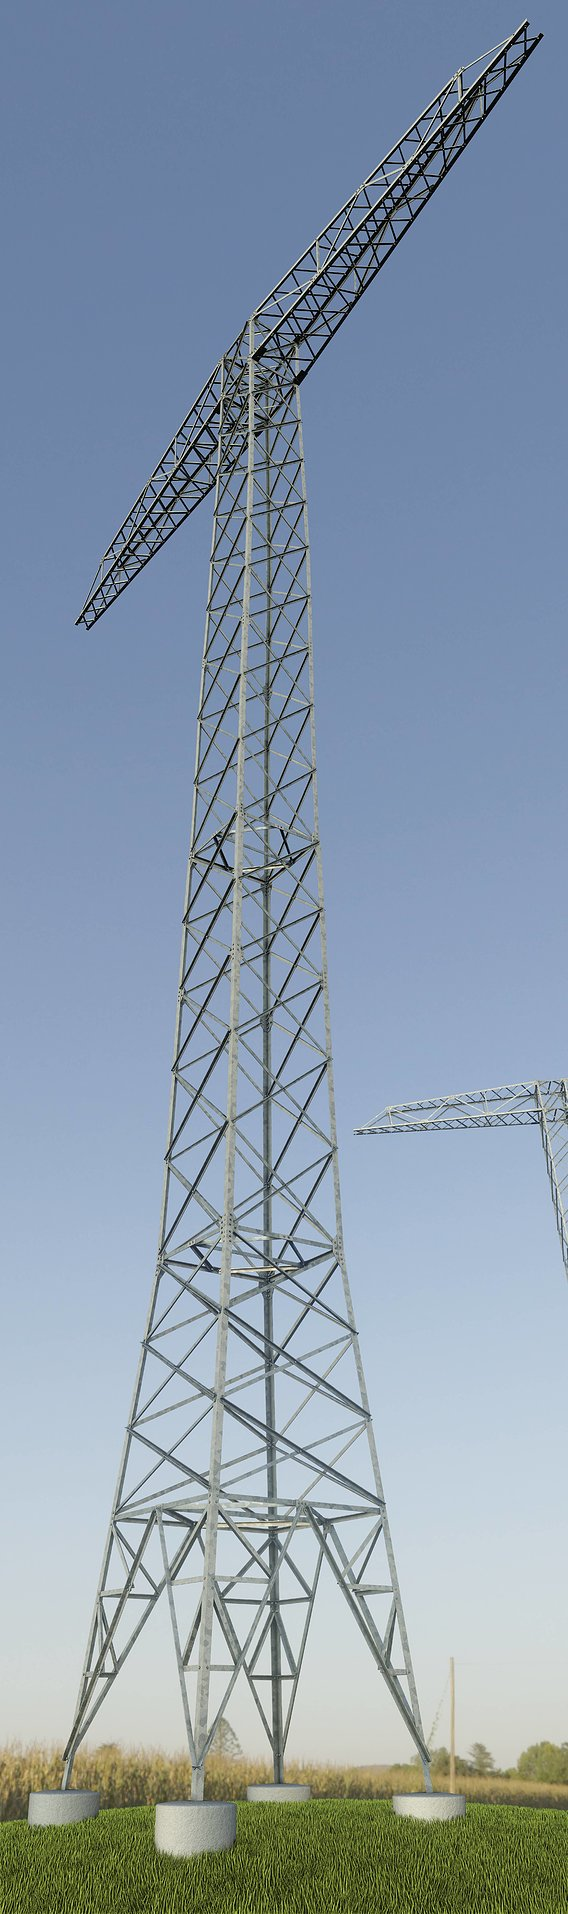 Transmission Tower 32 Meter